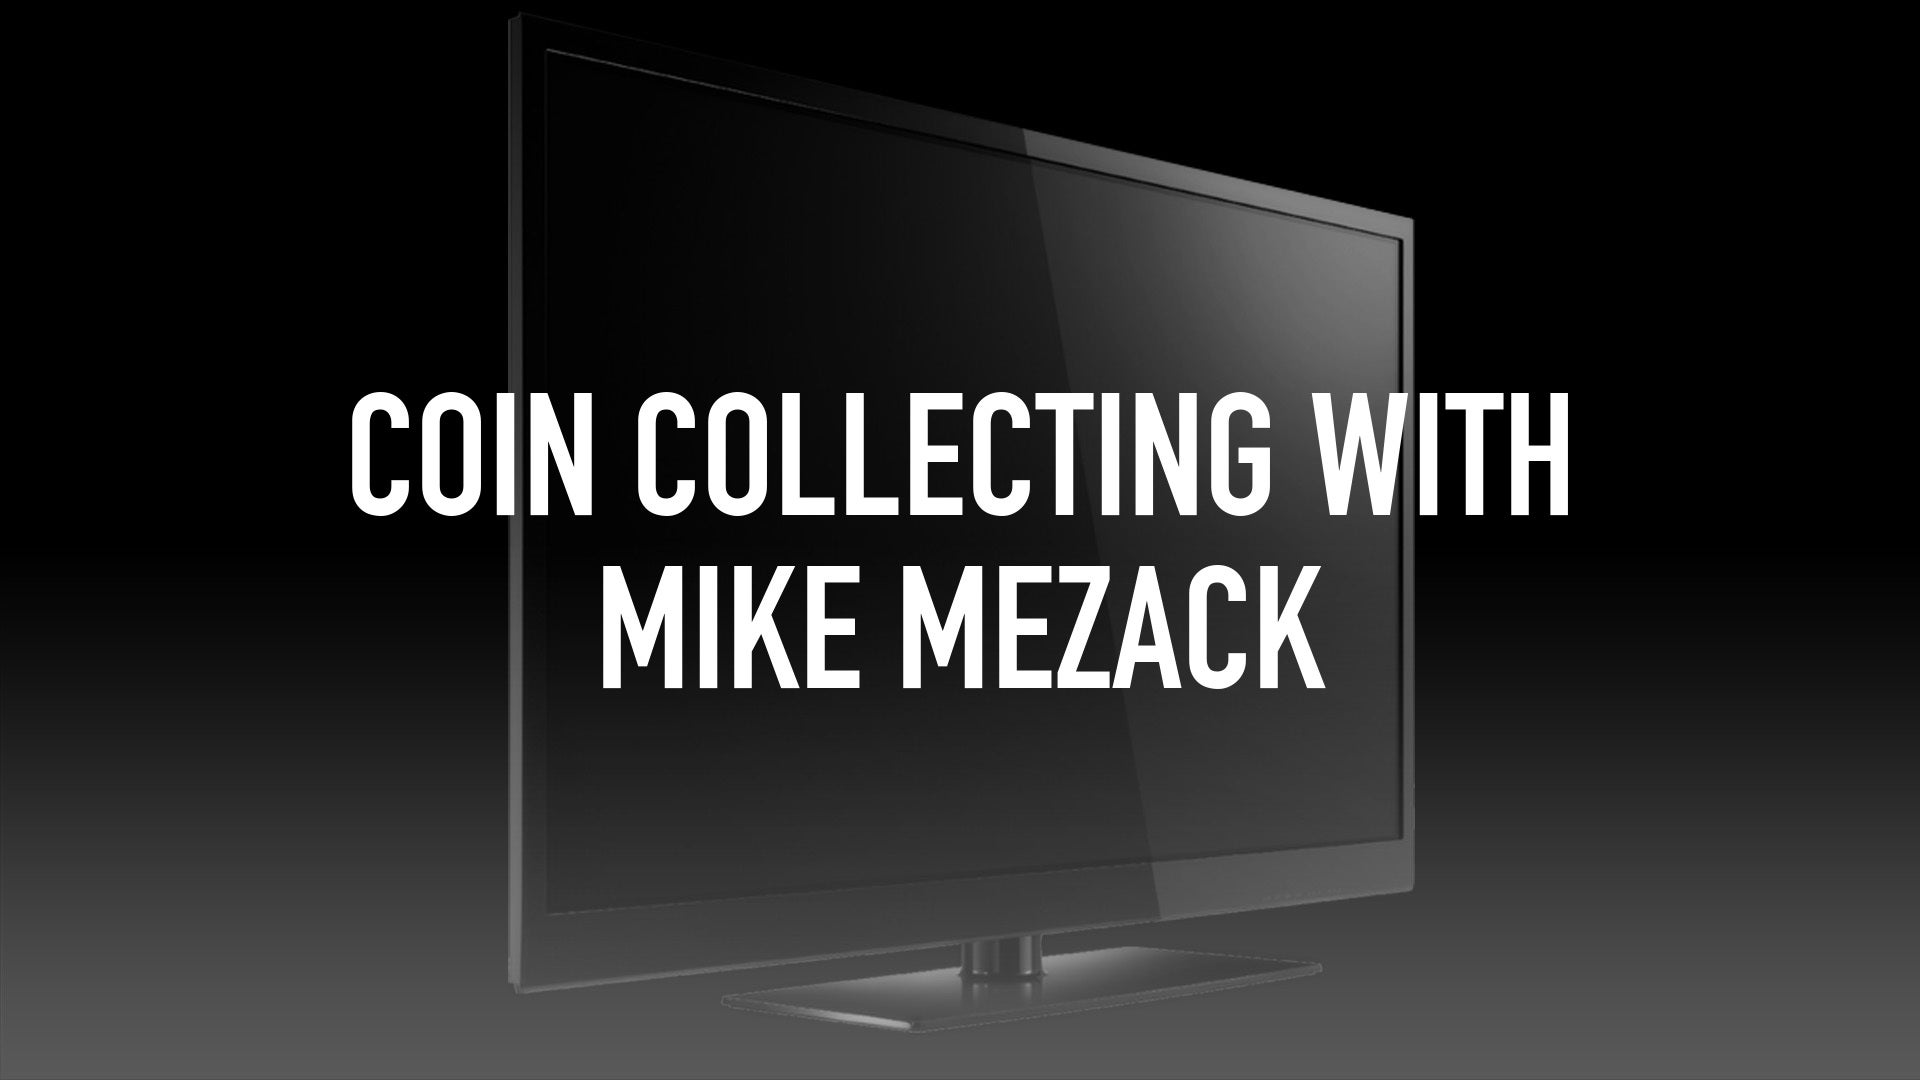 Coin Collecting with Mike Mezack